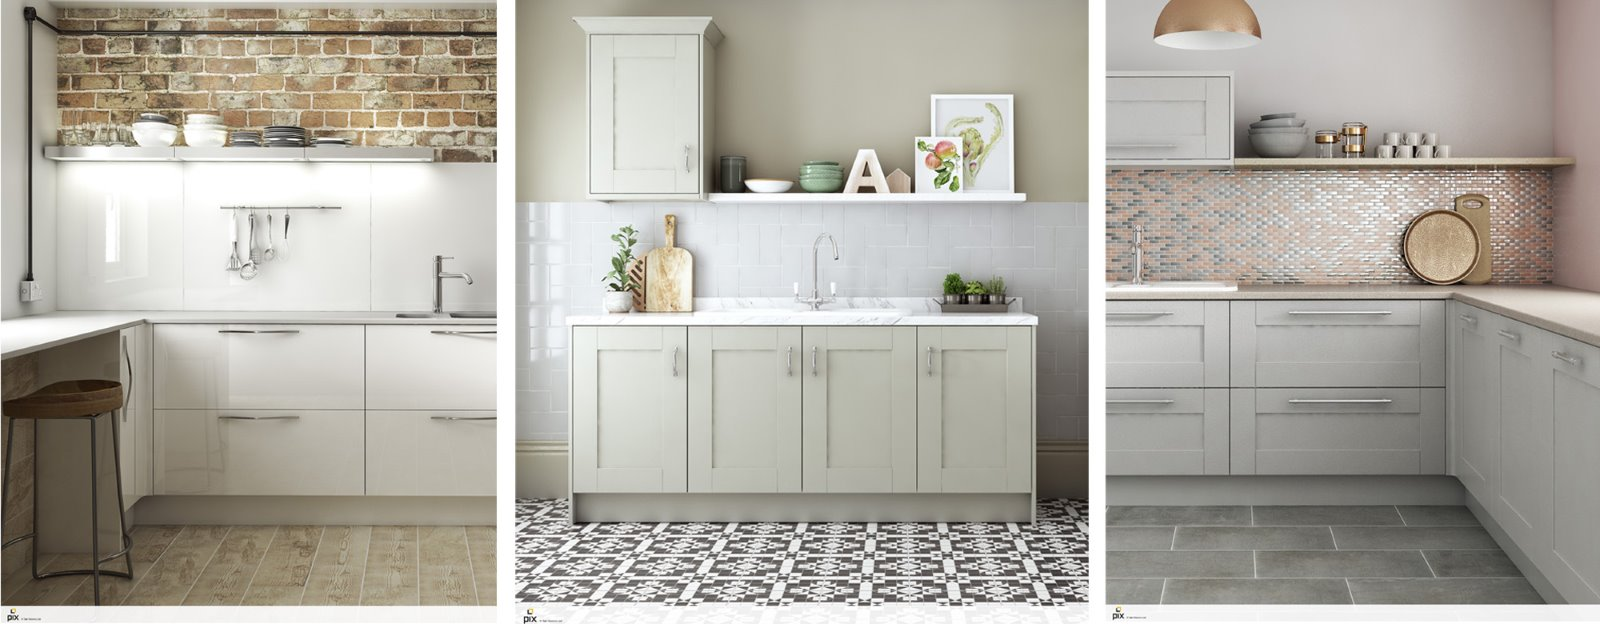 trend_cgi_kitchens